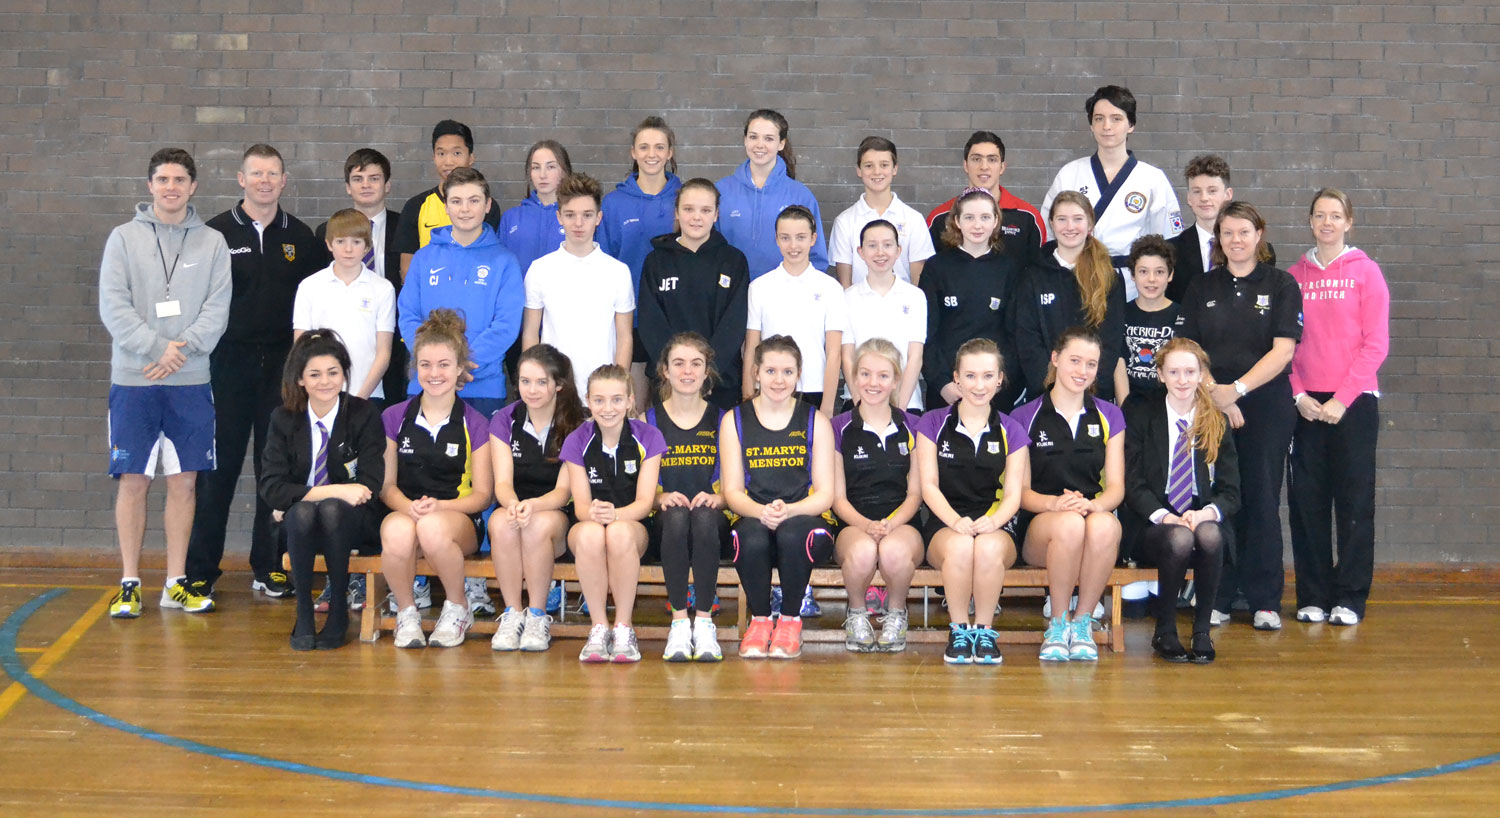 Proud moment: PE and Sport staff join pupils who have been featured on our website for their recent sporting achievements for a commemorative photo in our Gymnasium, January 2014